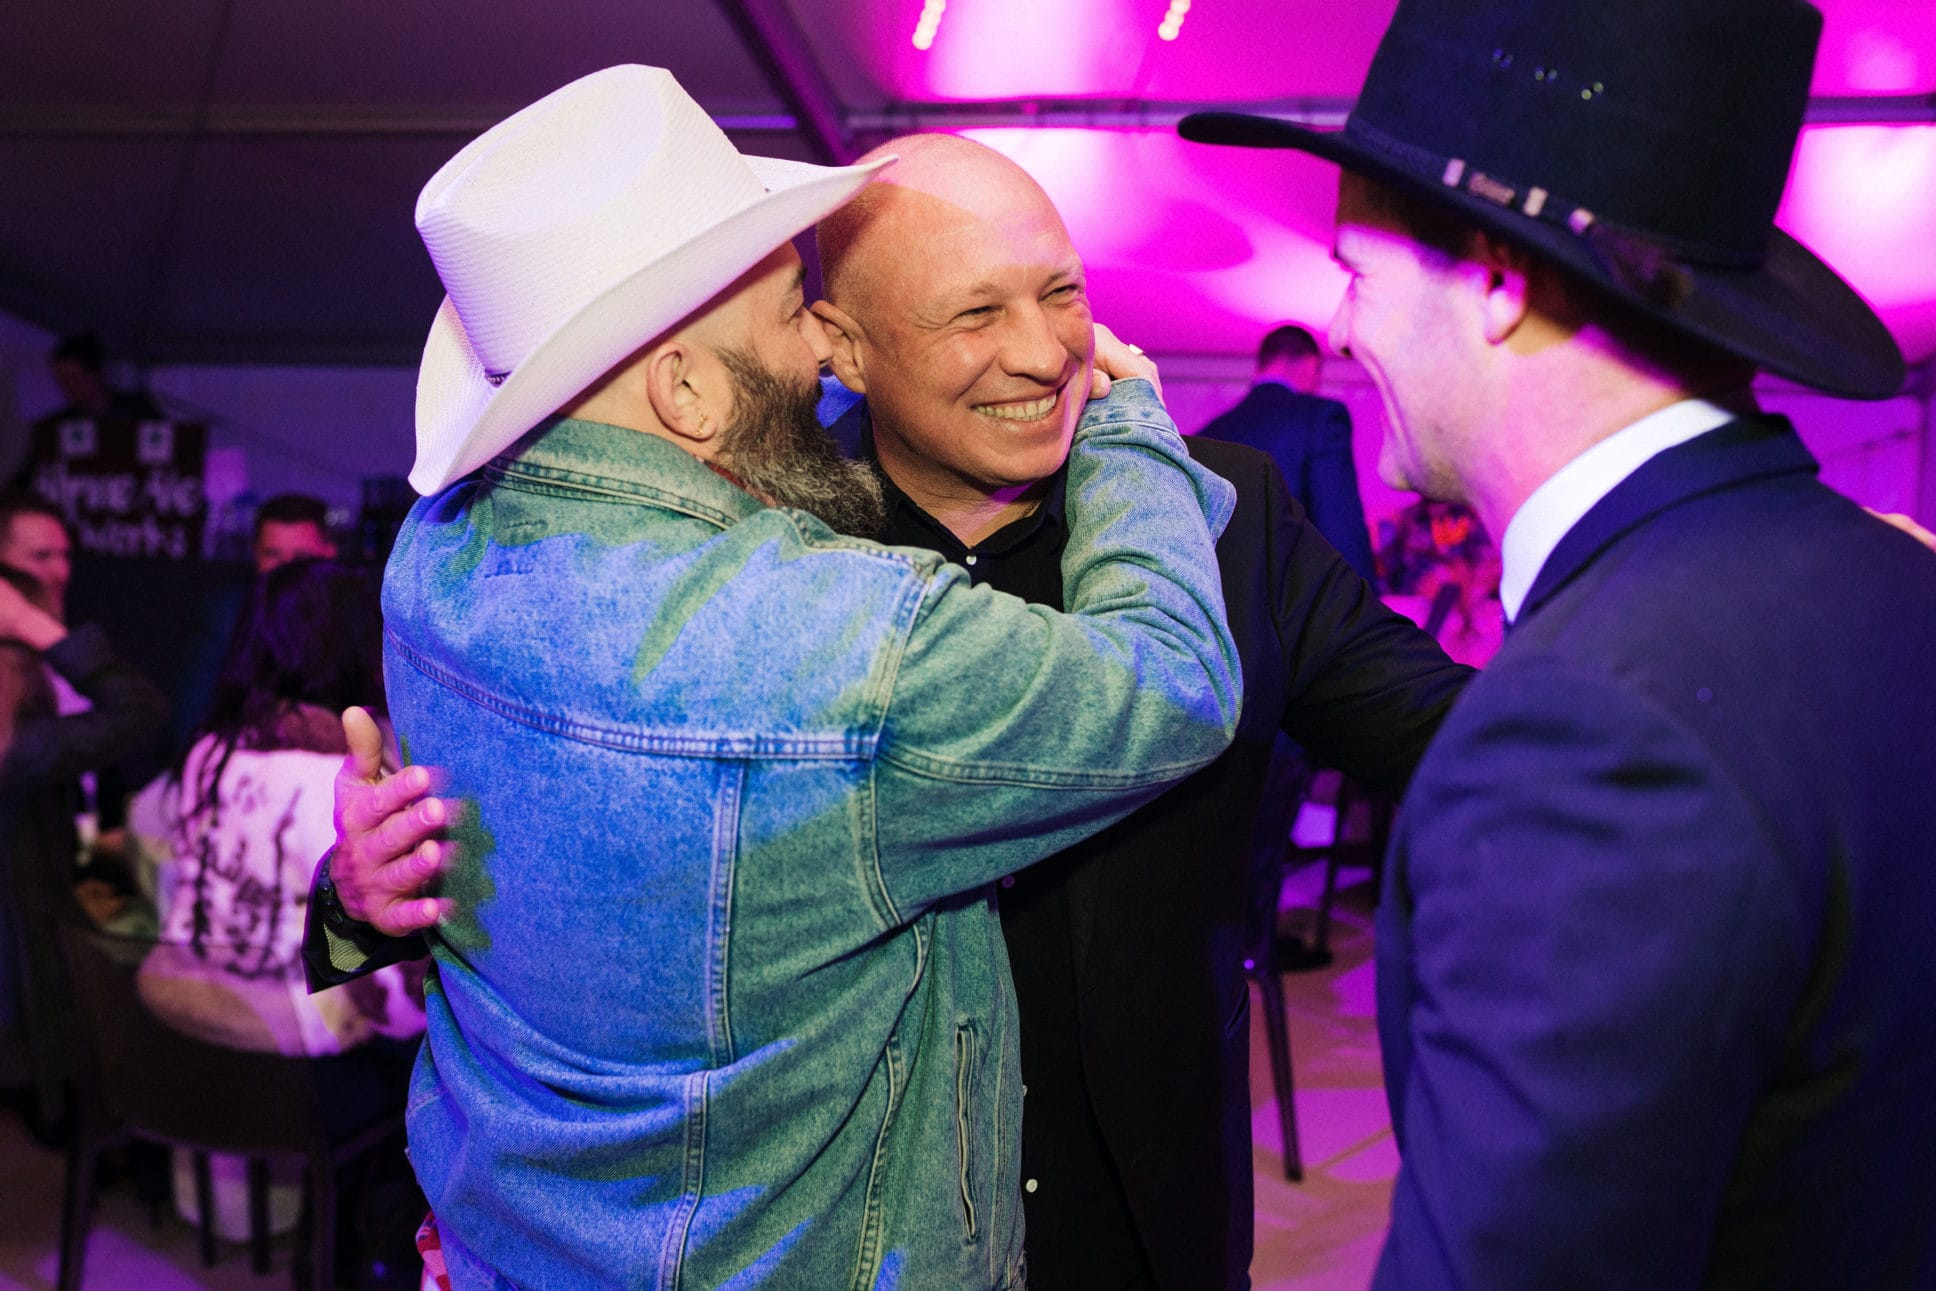 Men in cowboy hats smiling and hugging at event in queenstown.